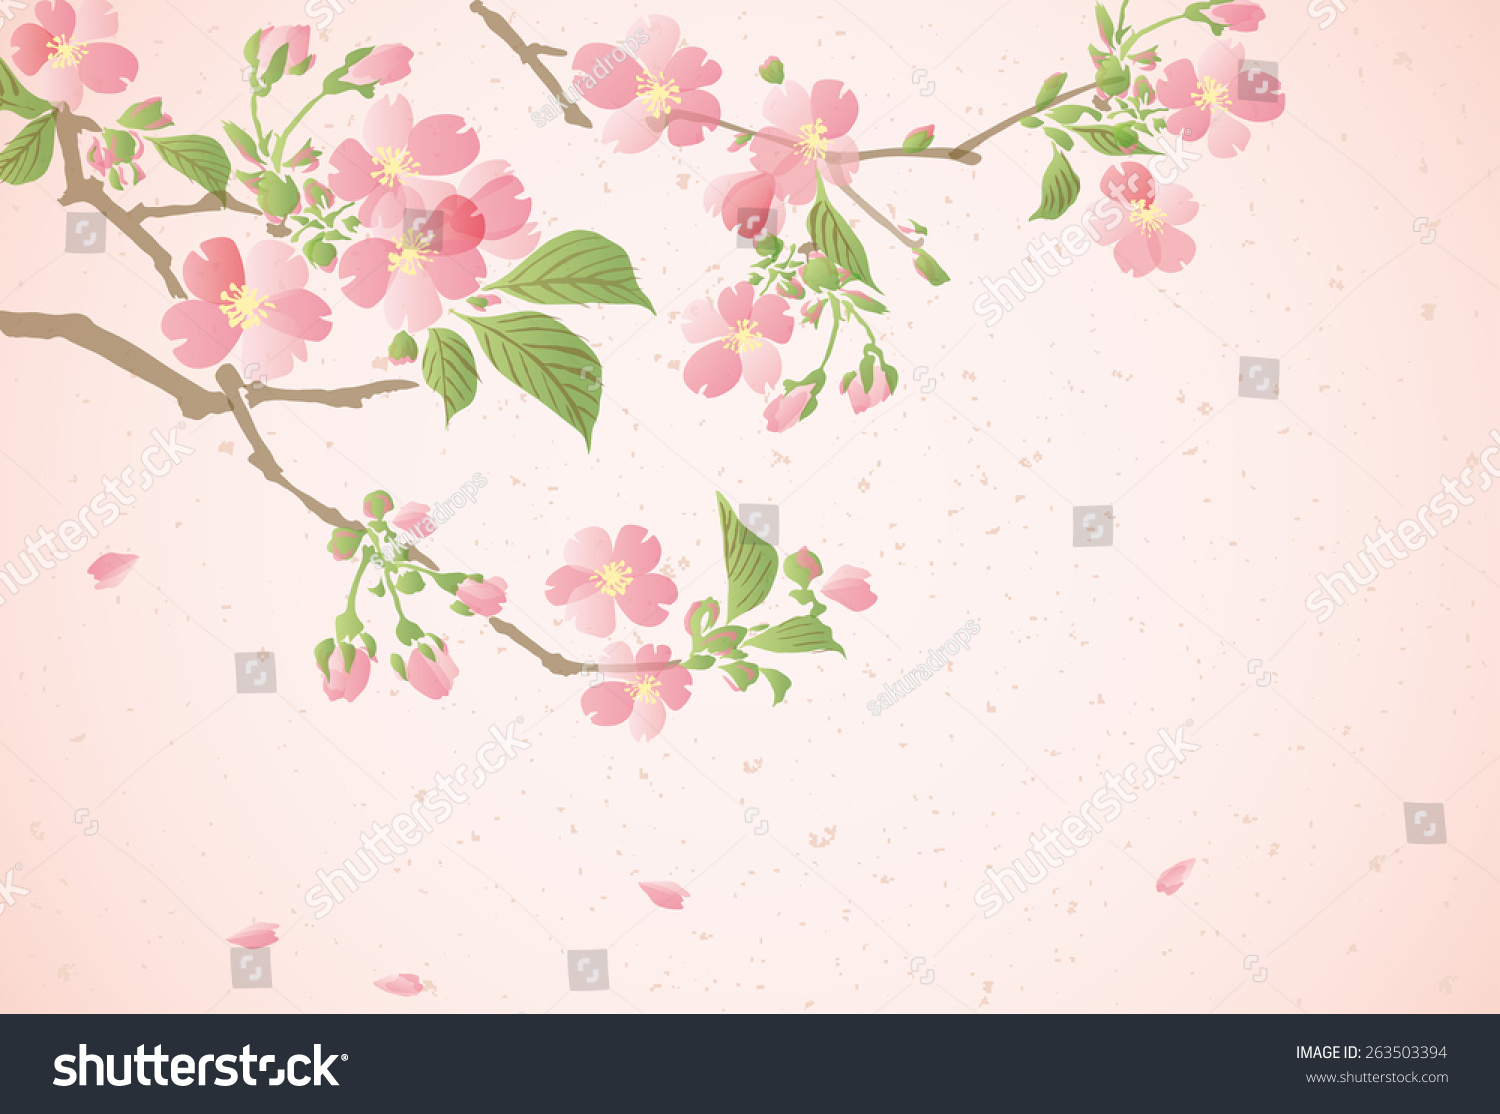 Japanese Paper With Cherry Blossom Flowers With Leaves Sakura For